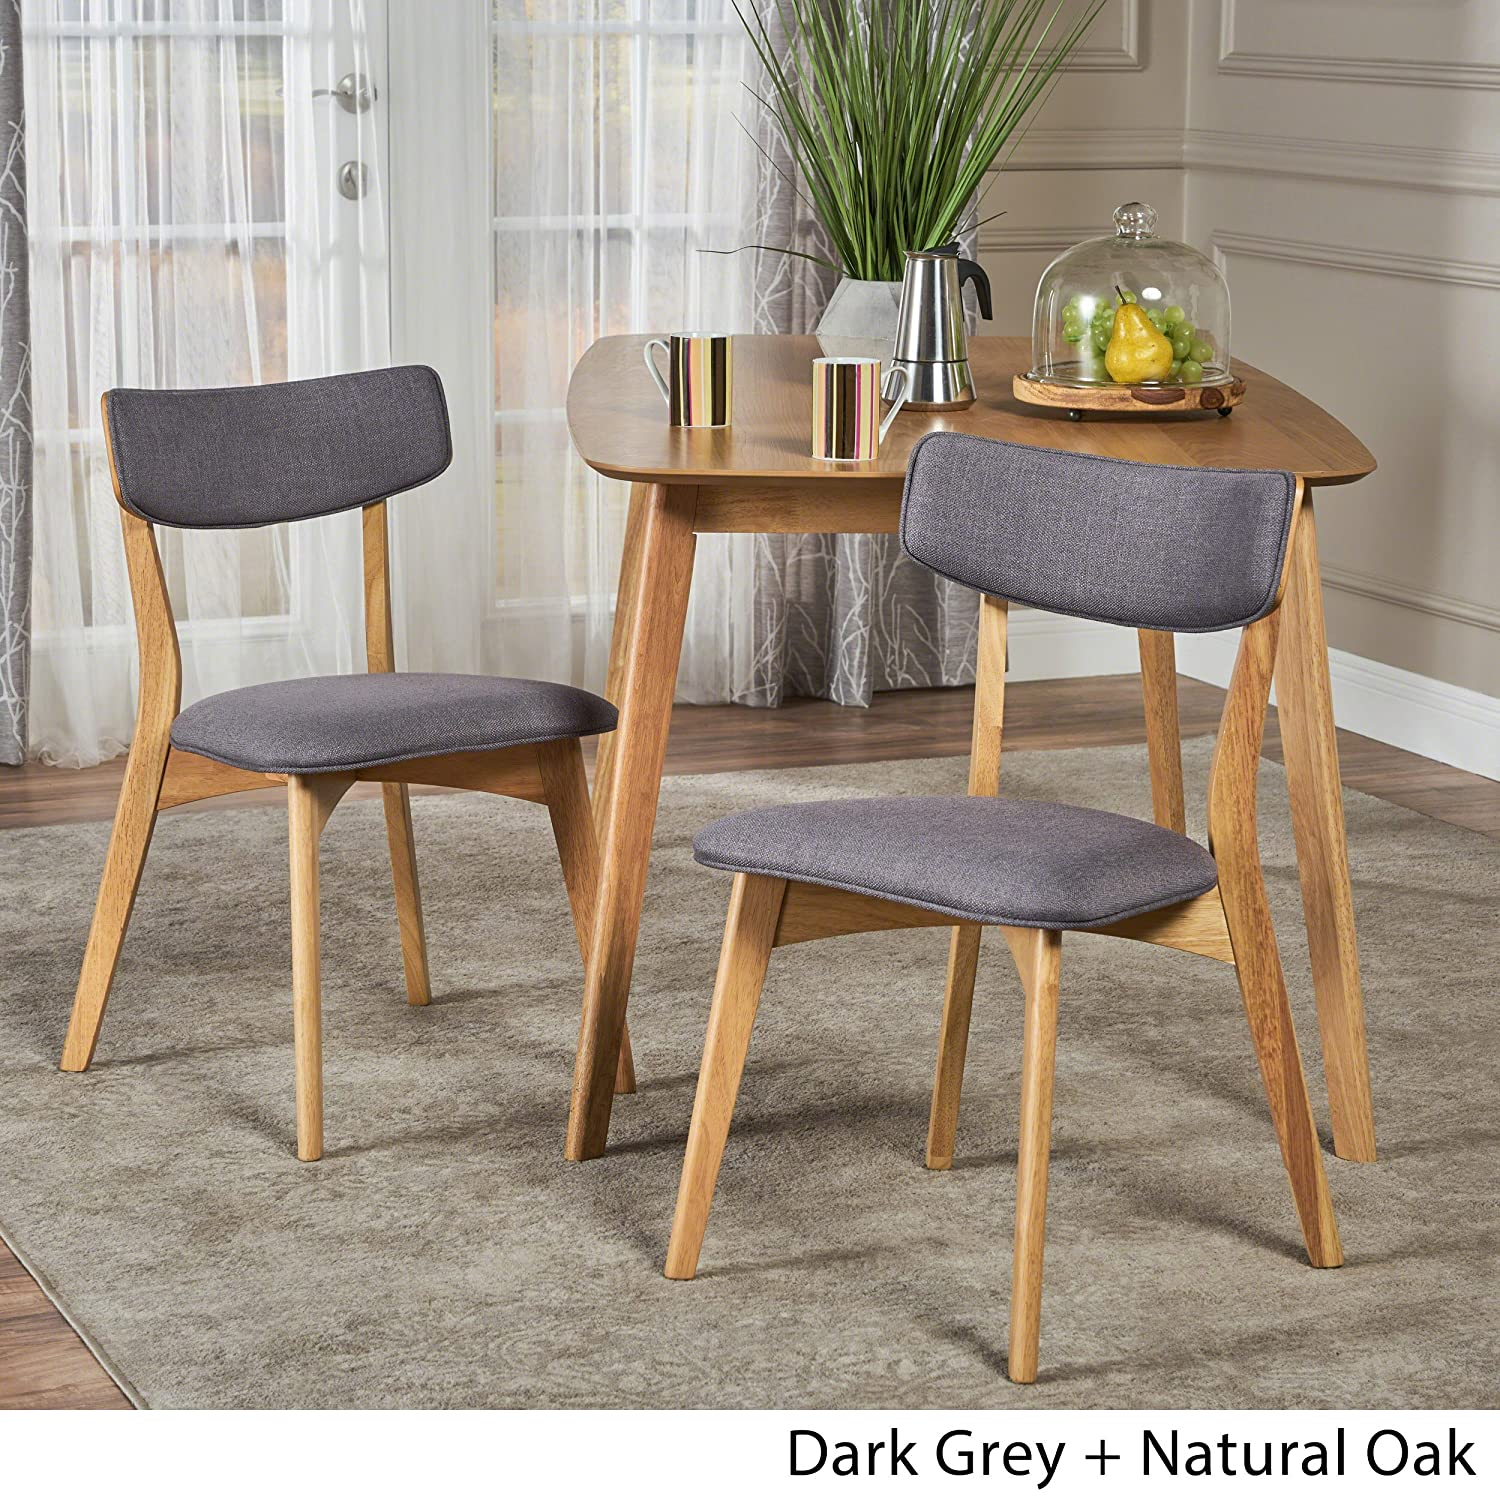 Amazon com molly mid century modern dark grey fabric dining chairs with natural oak finished rubberwood frame set of 2 chairs